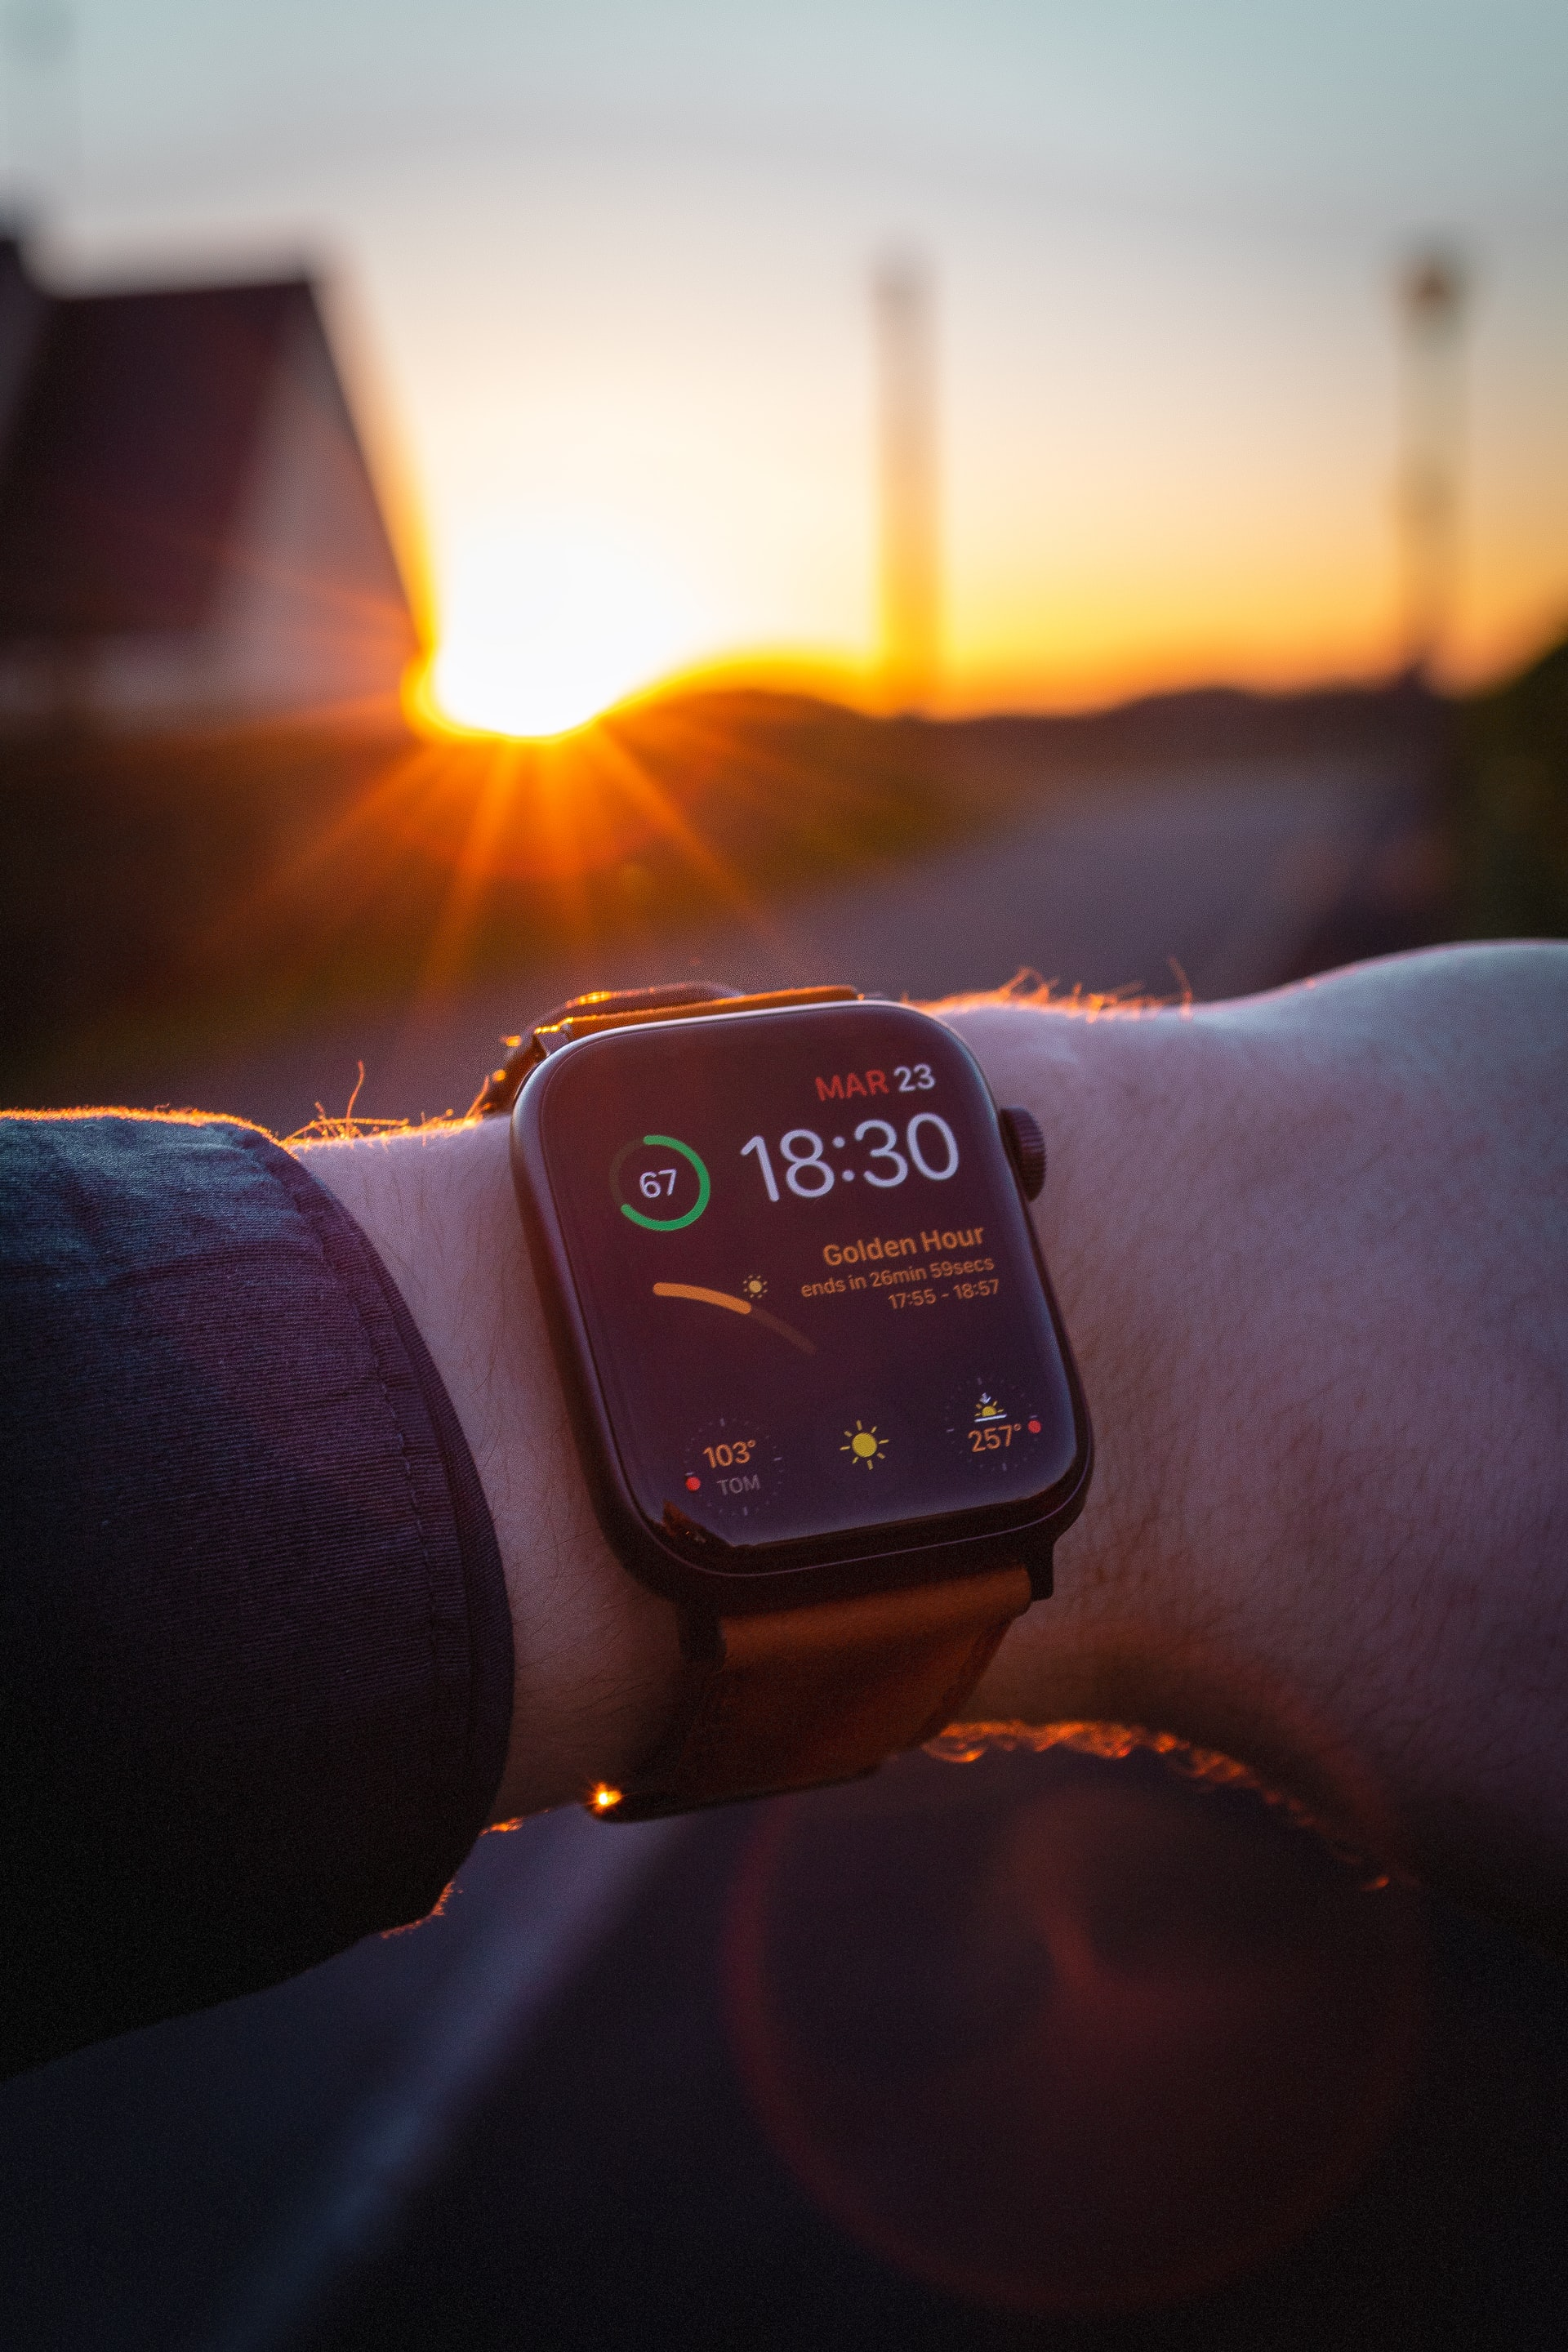 Smartwatch: Now Bringing You Gambling Action